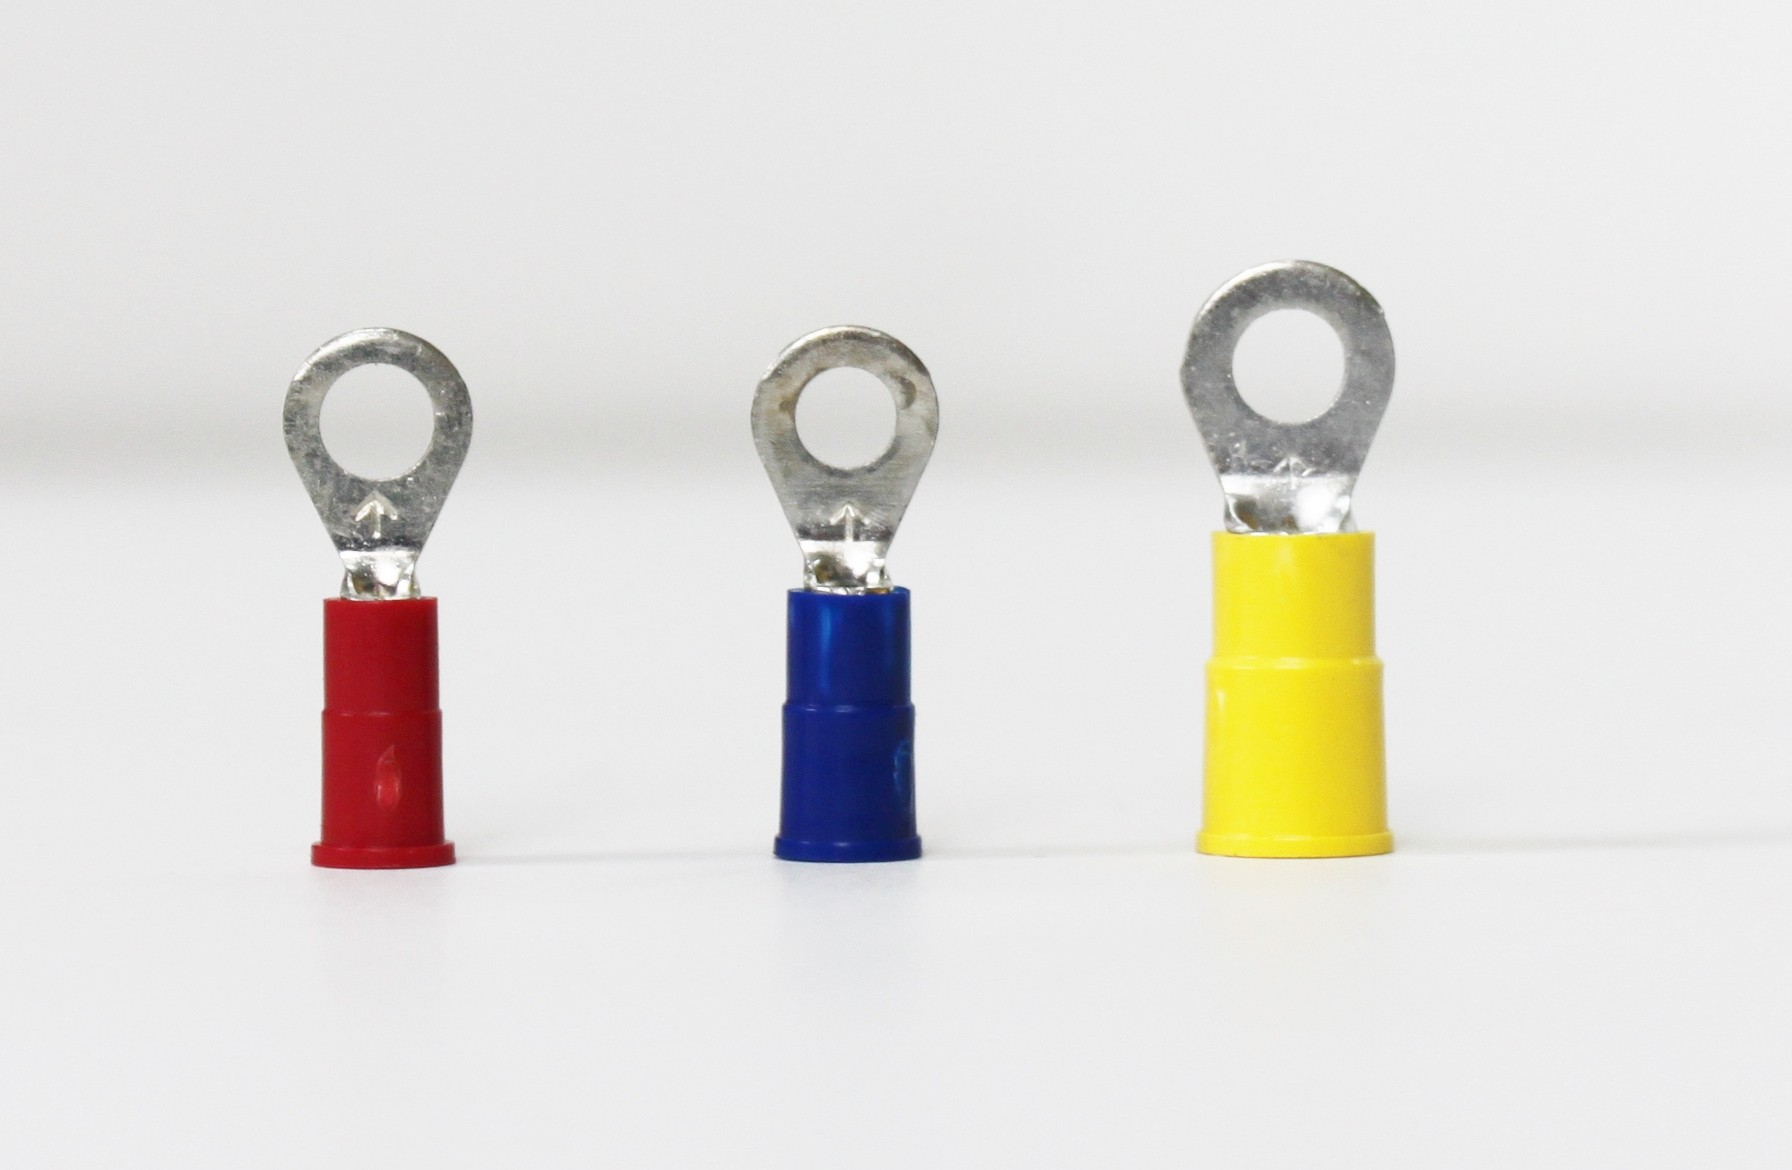 Vinyl Insulated Butted Seam Ring Terminals (22-18)